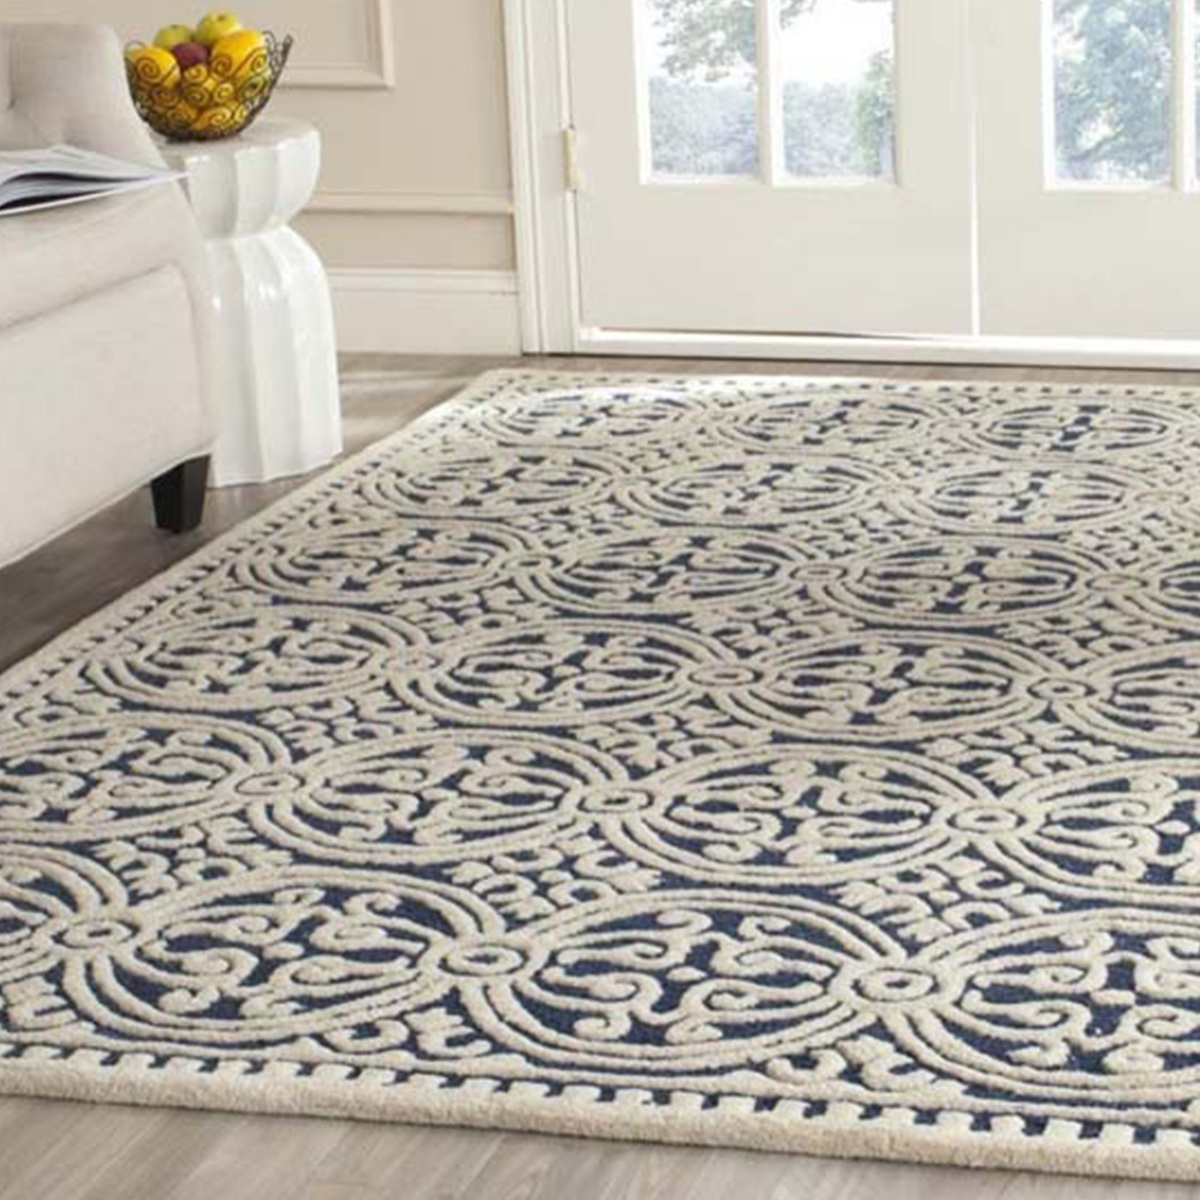 Moroccan inspired wool rug with a navy blue and white geometric pattern. photo